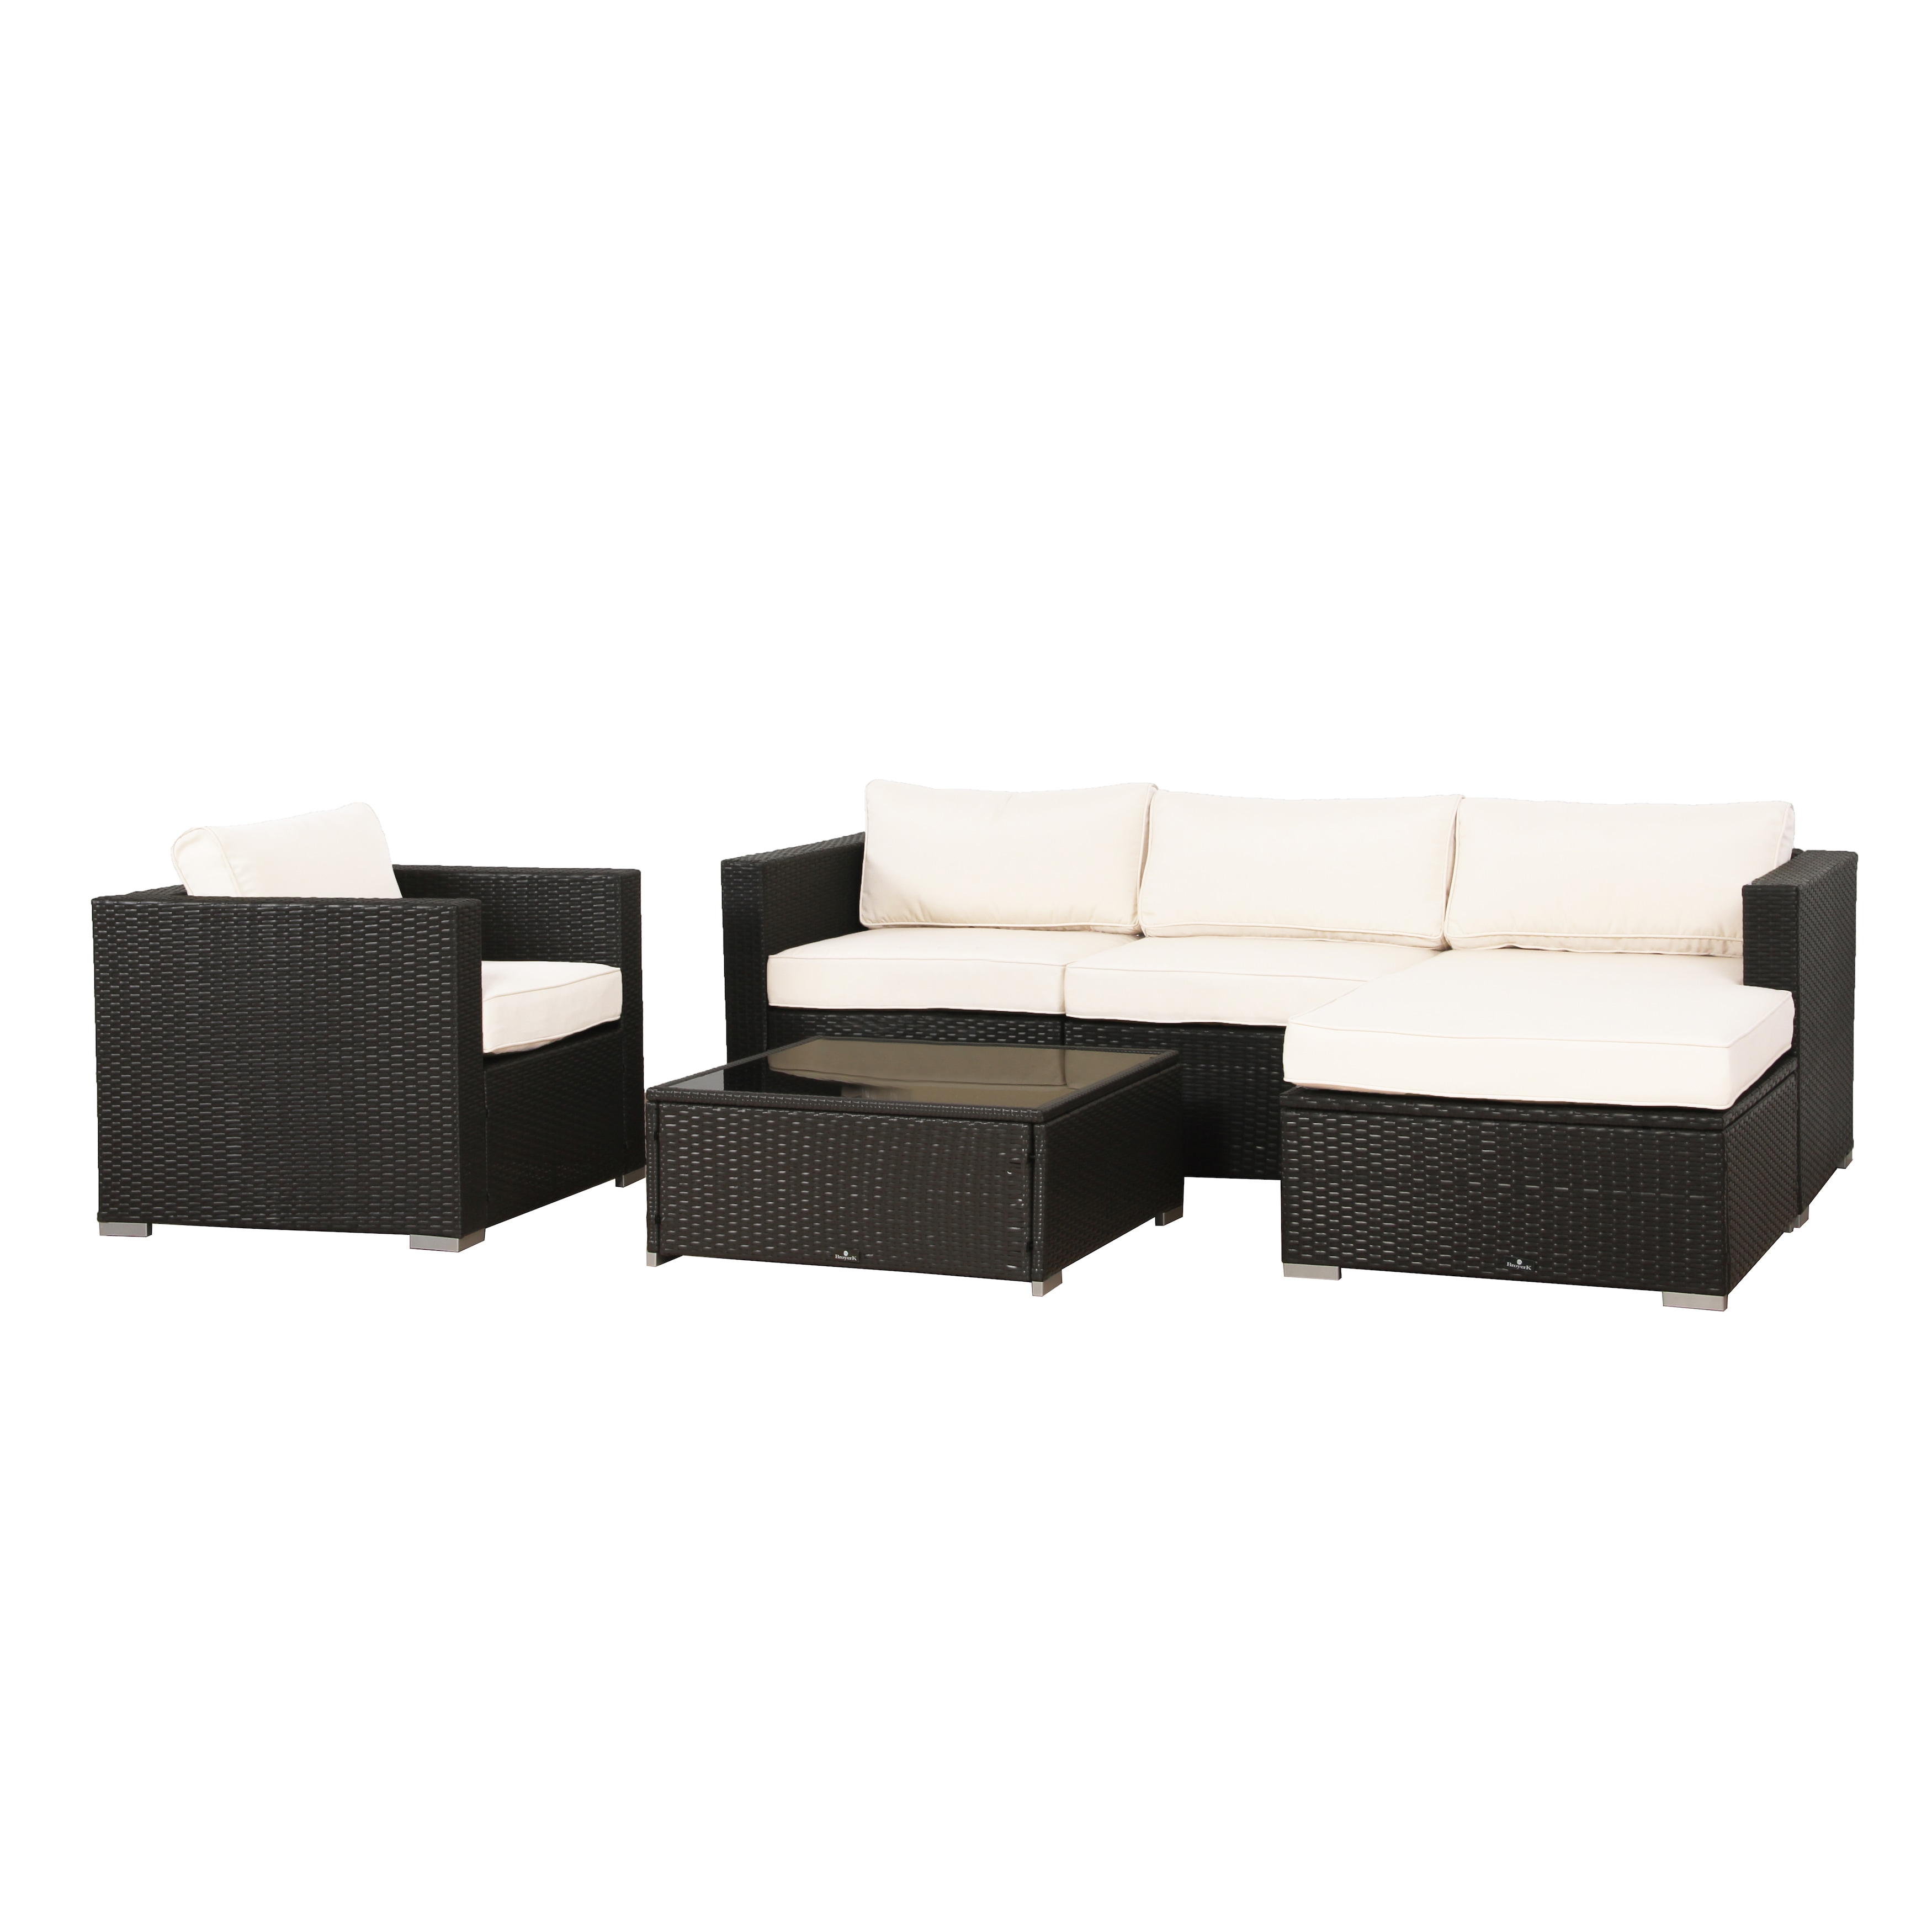 Shop BroyerK Cushion Cover For 6 Piece Outdoor Sofa Rattan Set   Free  Shipping Today   Overstock.com   13999078